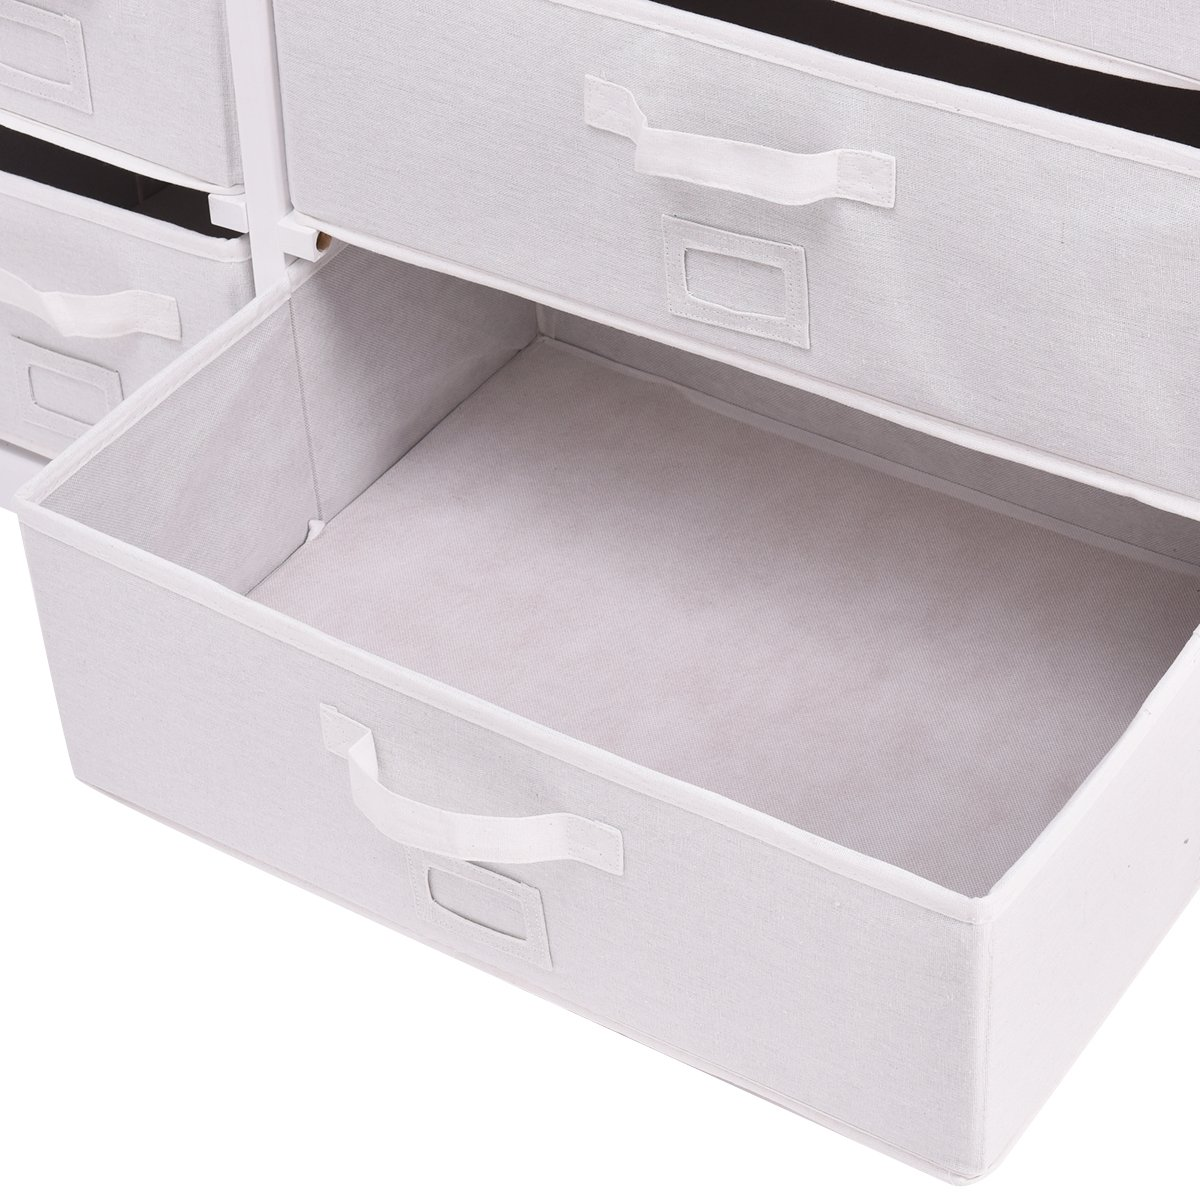 Costzon Baby Changing Table Infant Diaper Nursery Station w/6 Basket Storage Drawers (White) by Costzon (Image #6)